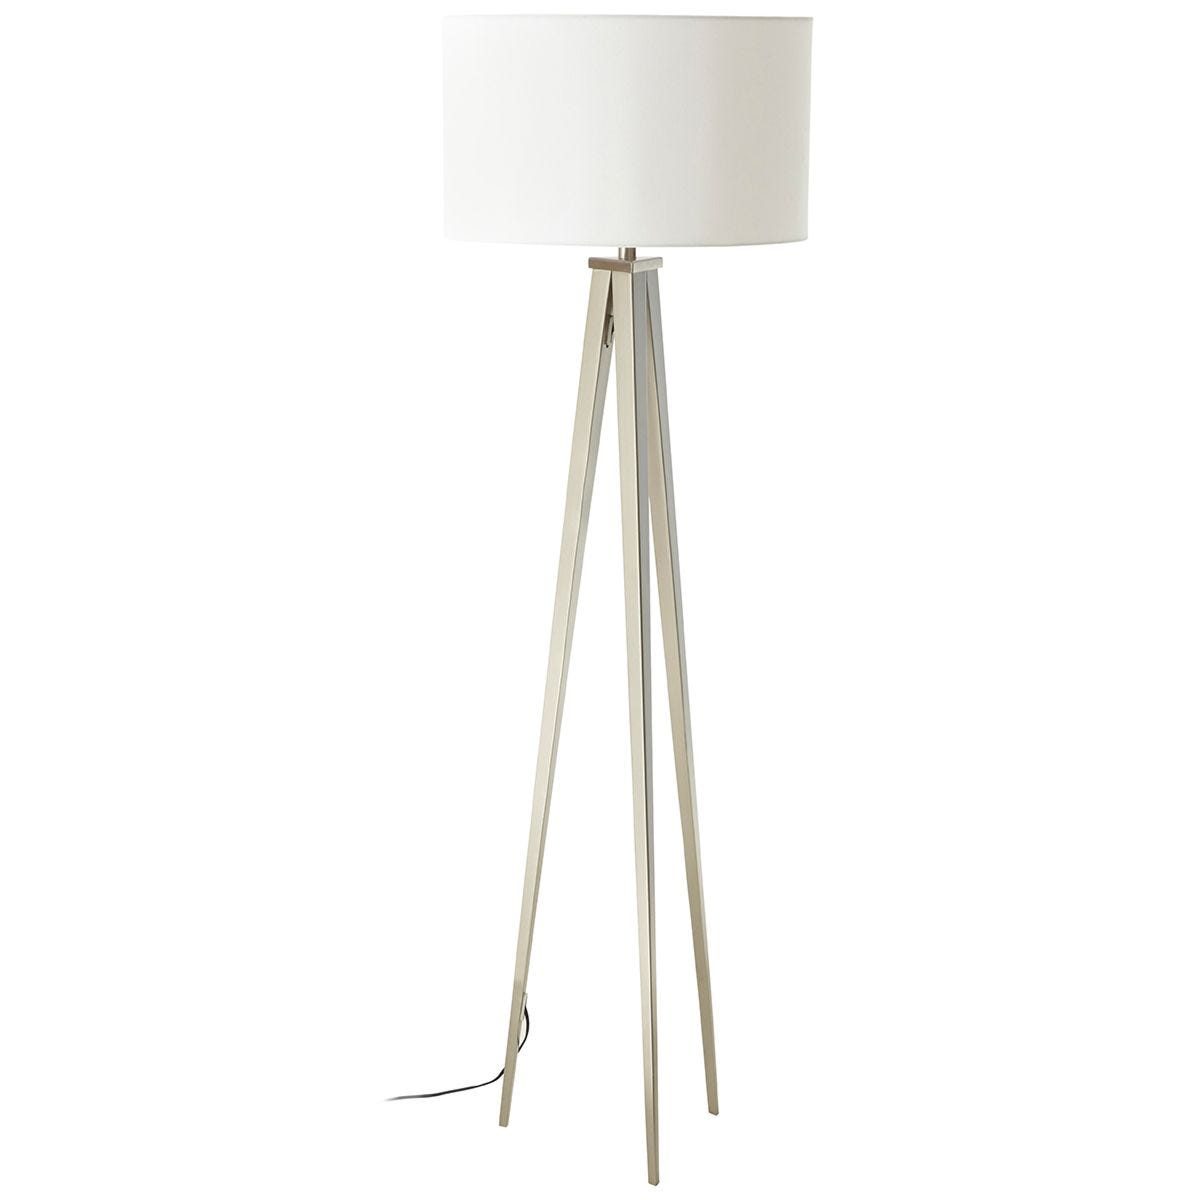 Premier Housewares Livia Floor Lamp with Metal Tripod Frame & White Fabric Shade